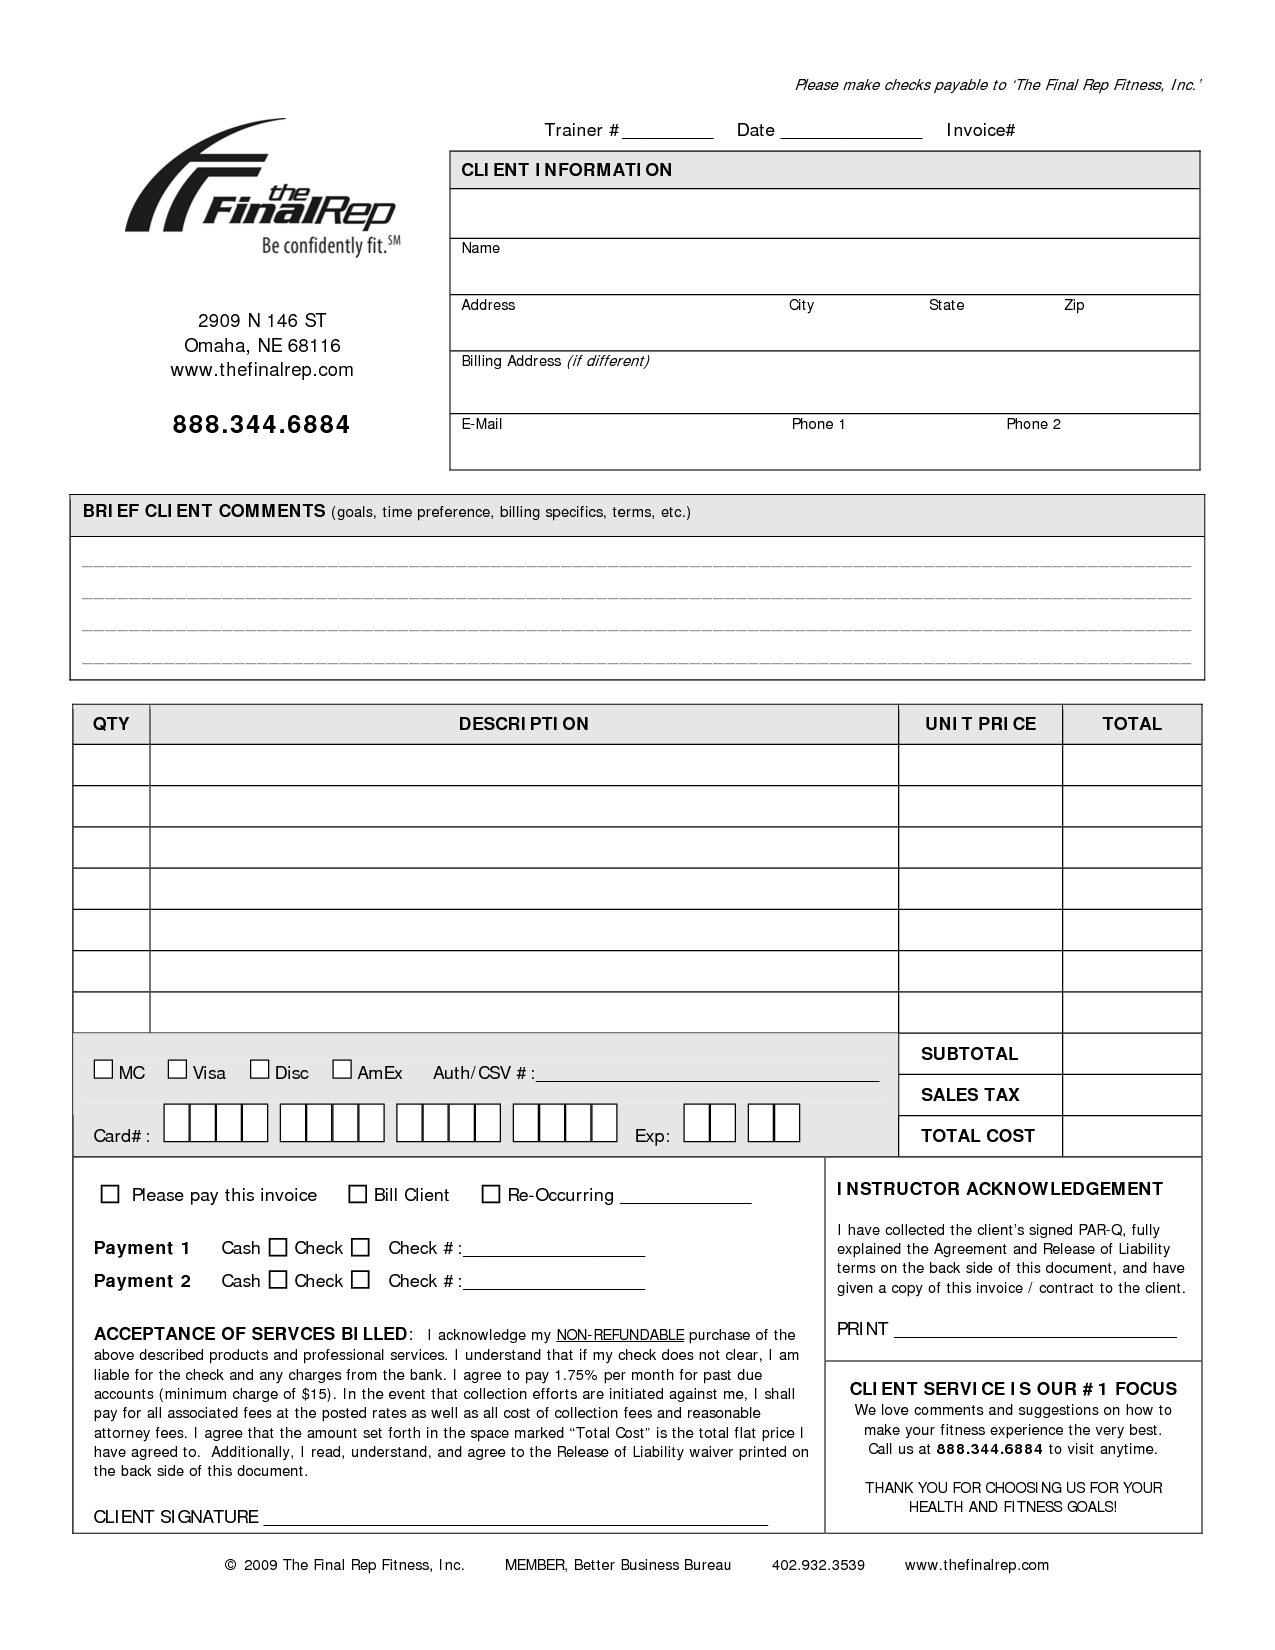 Personal invoice template invoice example for Personal trainer contract templates